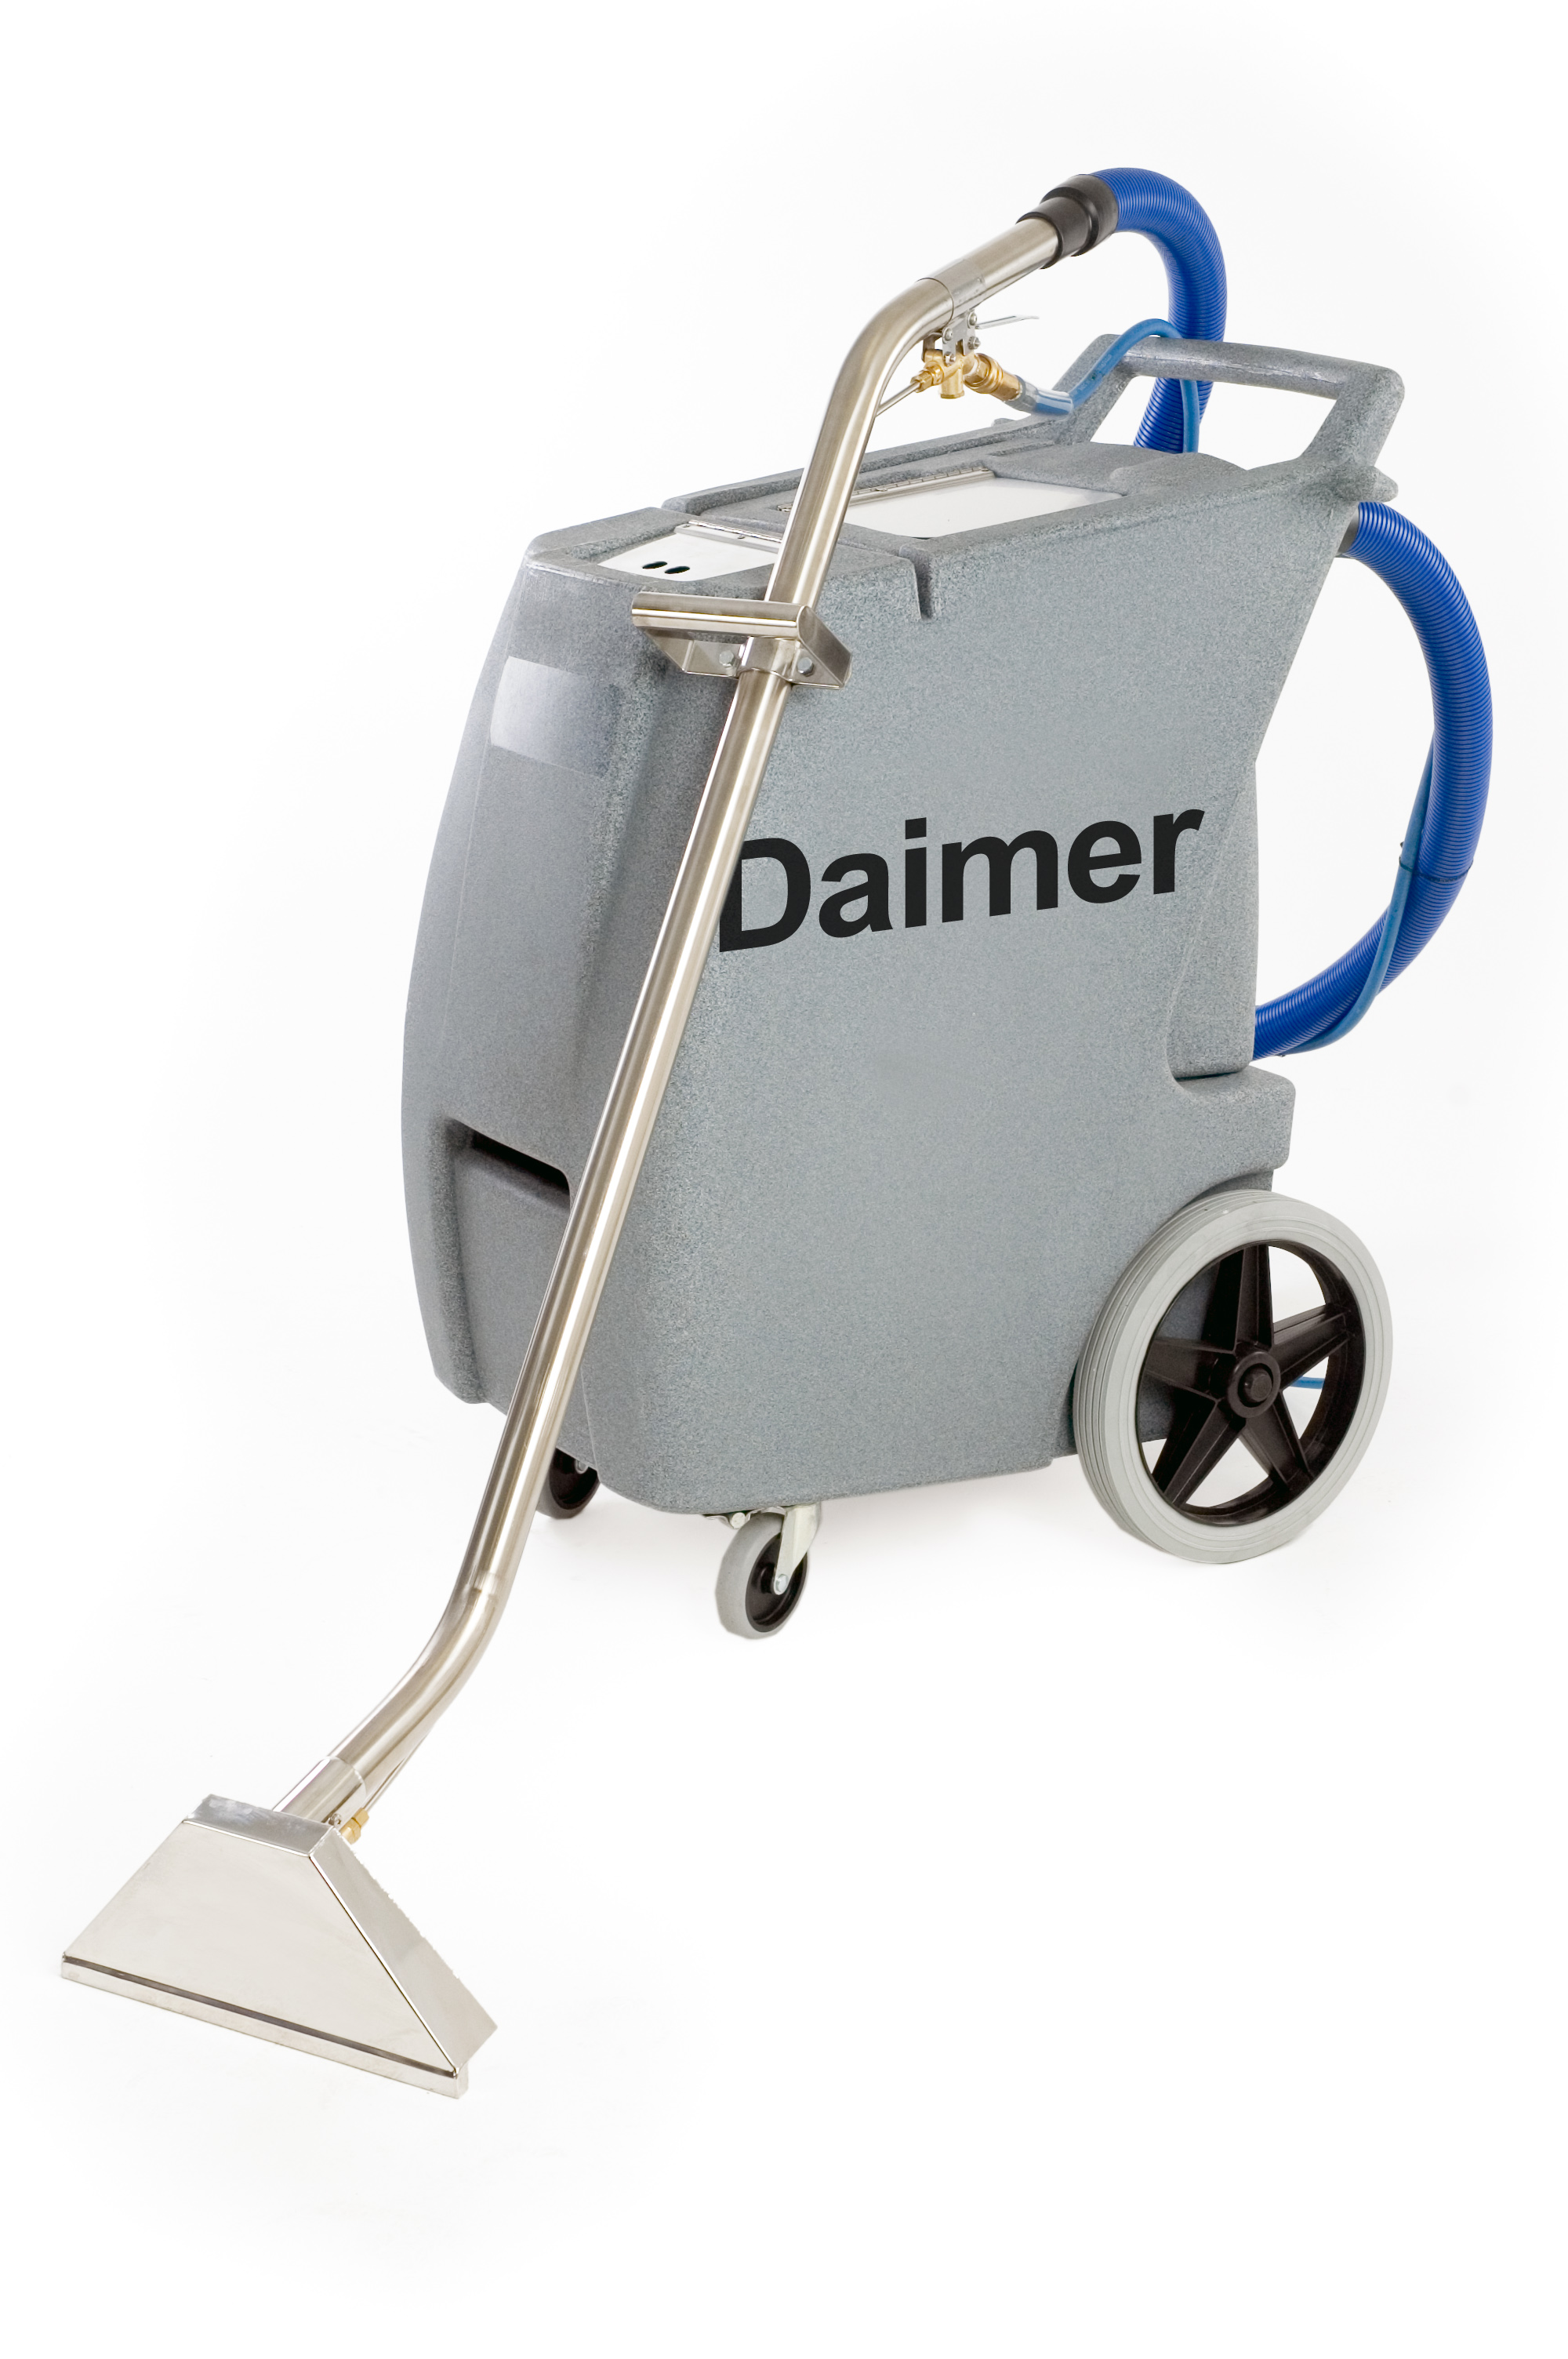 Steam Carpet Cleaners For Commercial Applications From